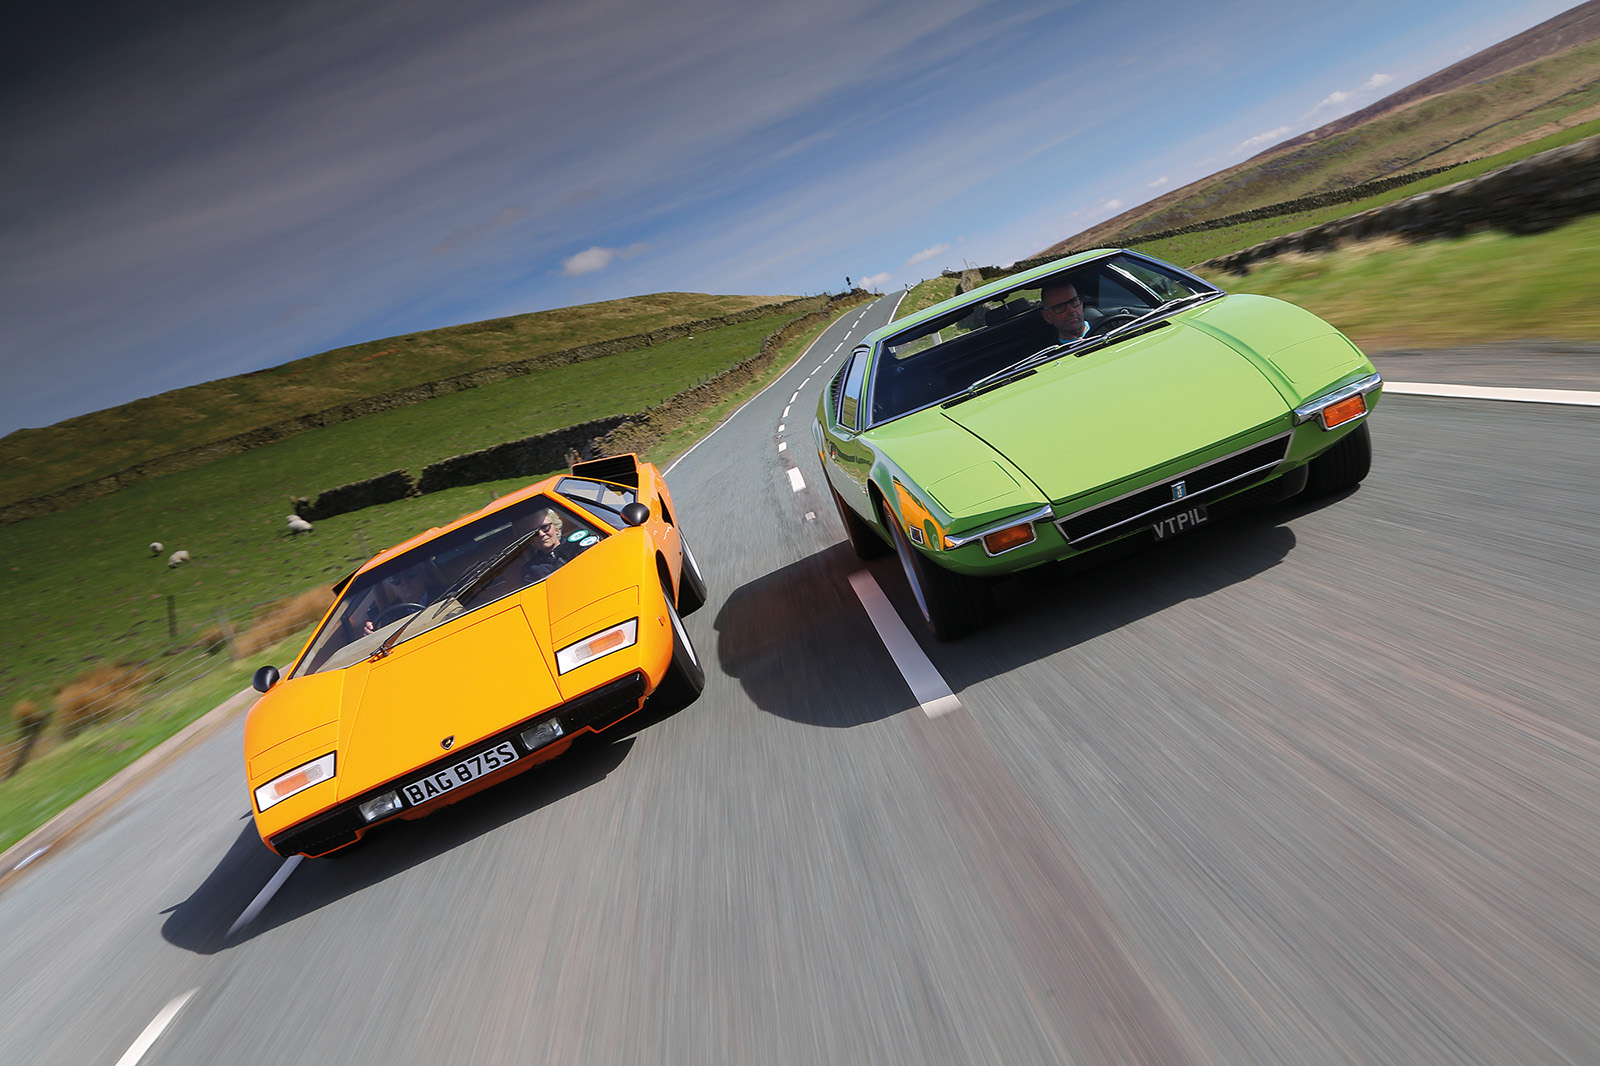 For Sale Fully Restored 1972 De Tomaso Pantera UK.  Images courtesy of Classic & Sports Car Magazine.